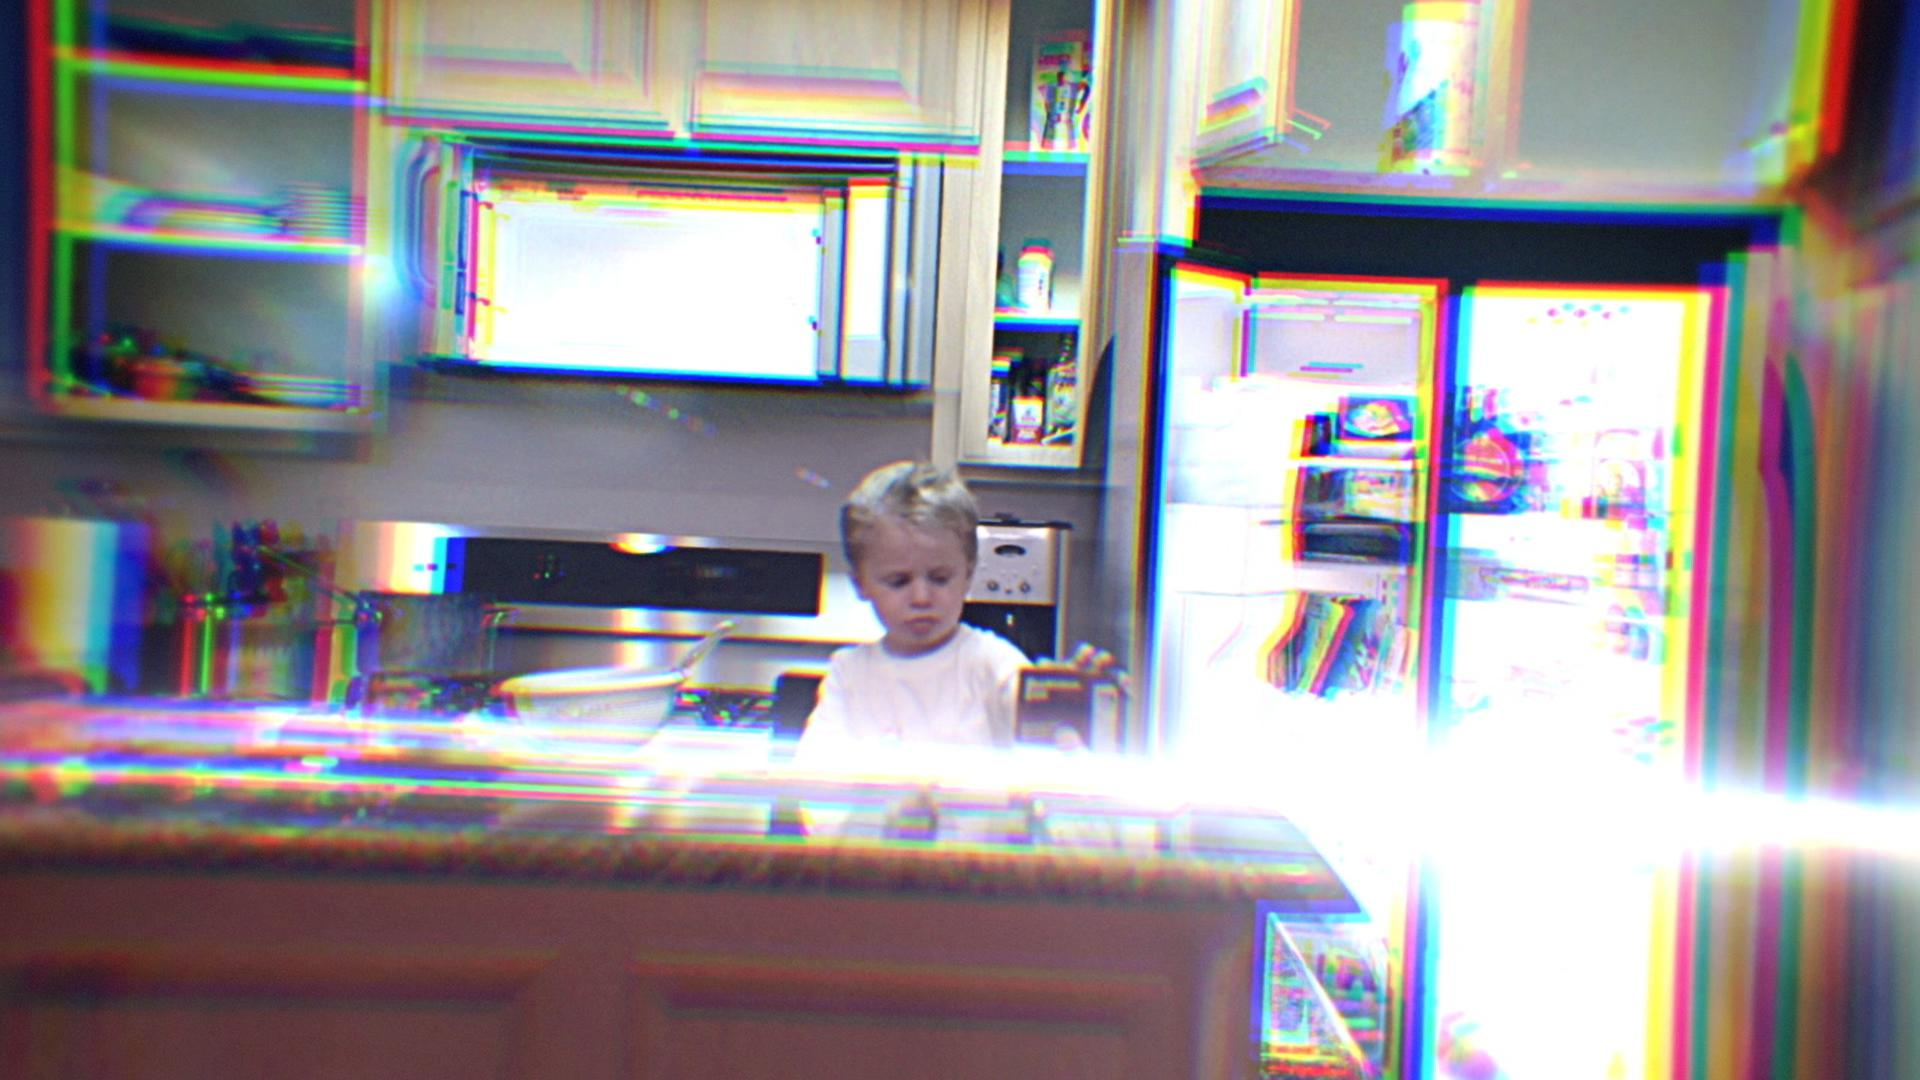 Supper_Time_Release_1080_422_HQ.mov_002_o.jpg